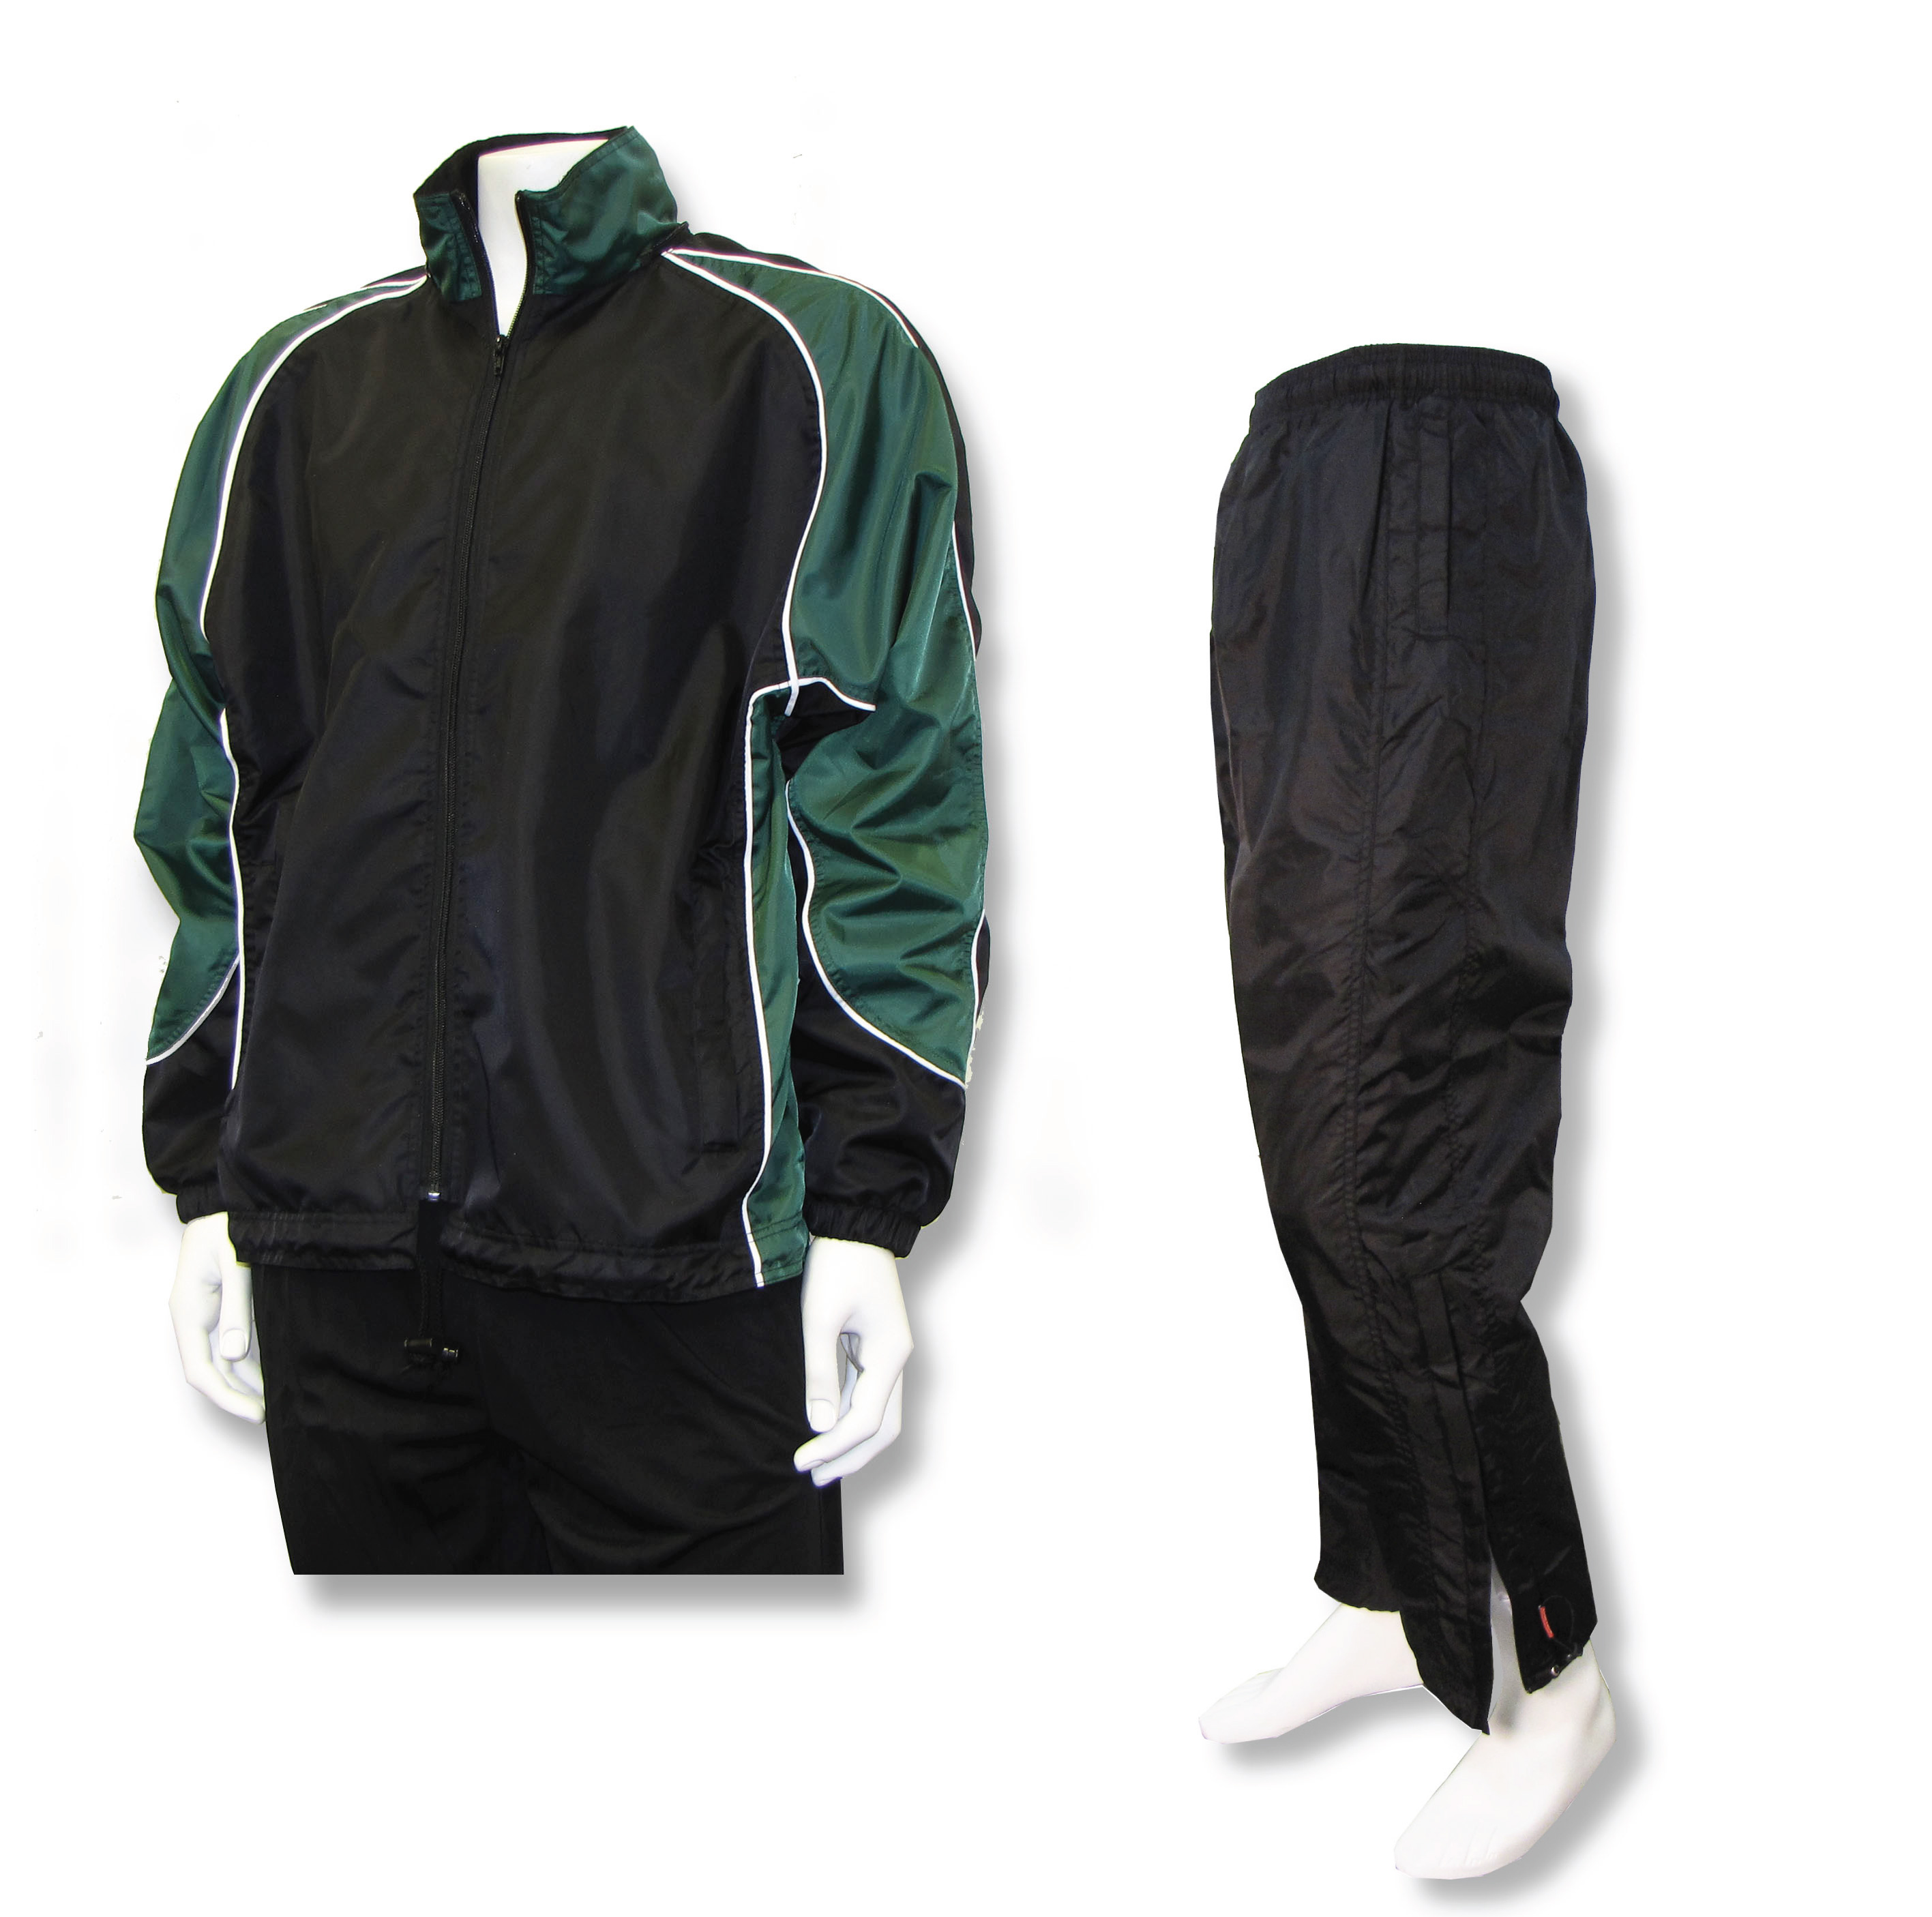 Water resistant warmup set with black/forest jacket and black pants by Code Four Athletics